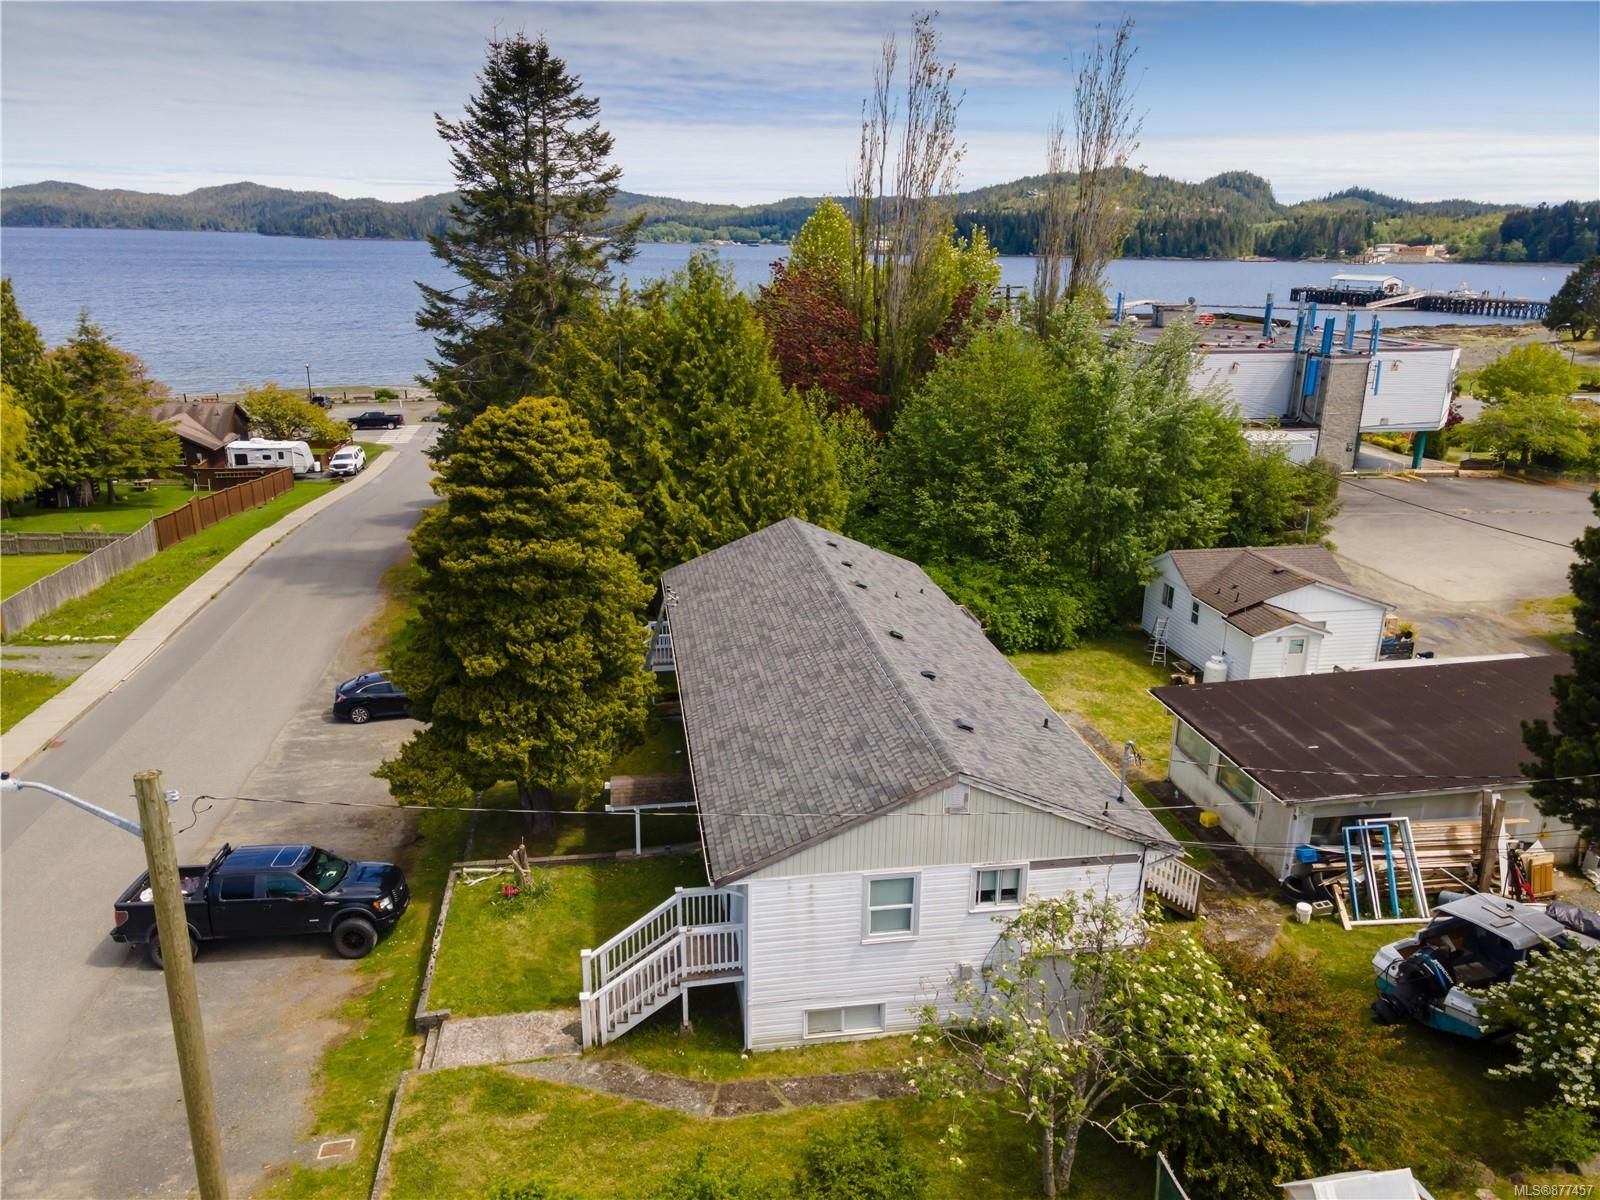 Main Photo: 8755 Central St in : NI Port Hardy Multi Family for sale (North Island)  : MLS®# 877457